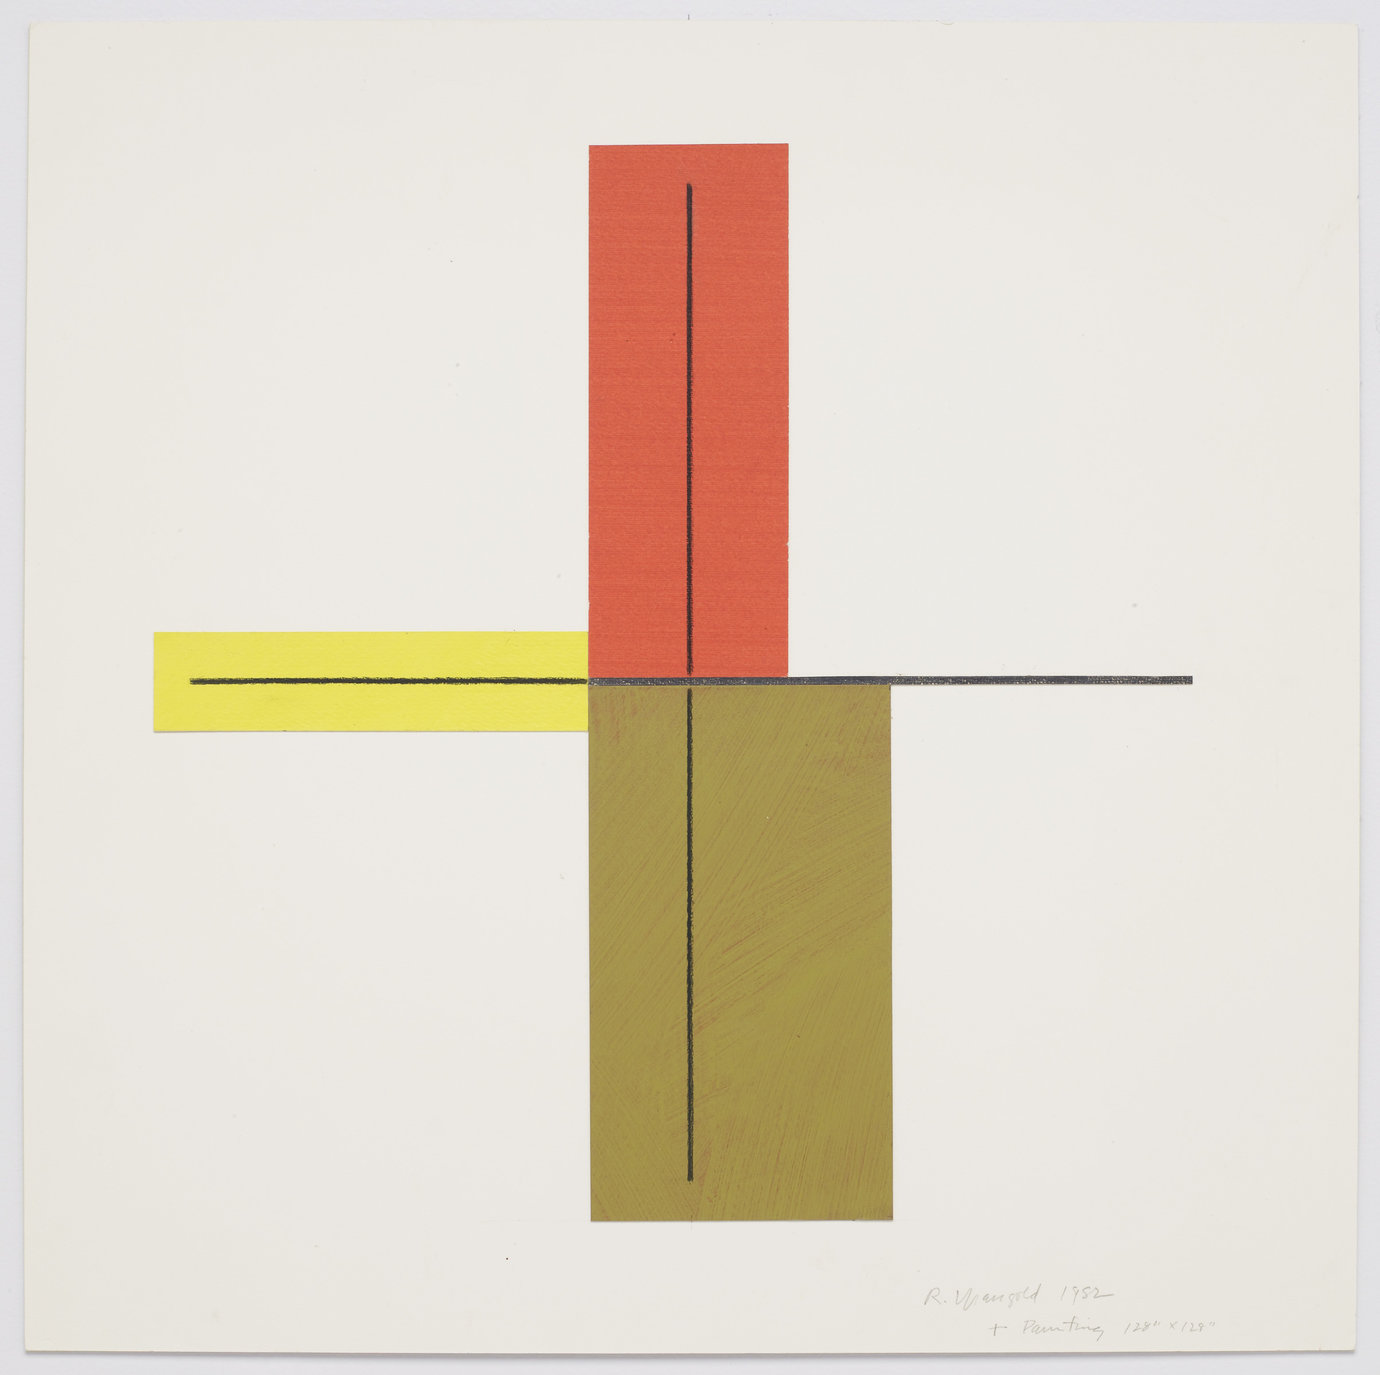 ", 1982. Acrylic and pencil on paper mounted on board, 20"" x 20"" (50.8 cm x 50.8 cm)."